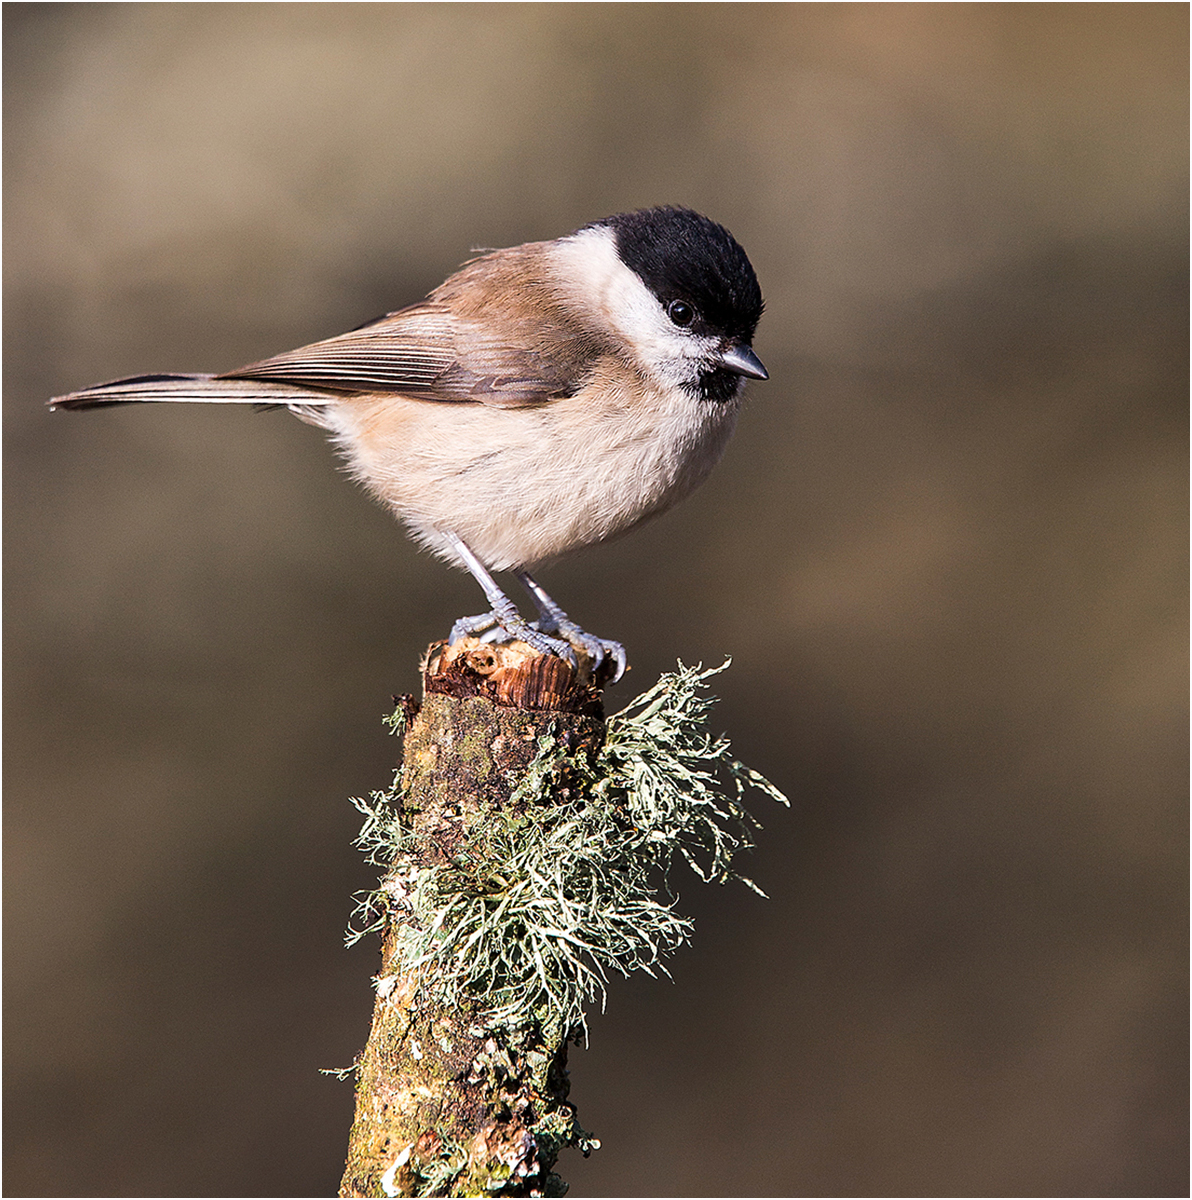 First 'Marsh Tit' by Tony Oliver